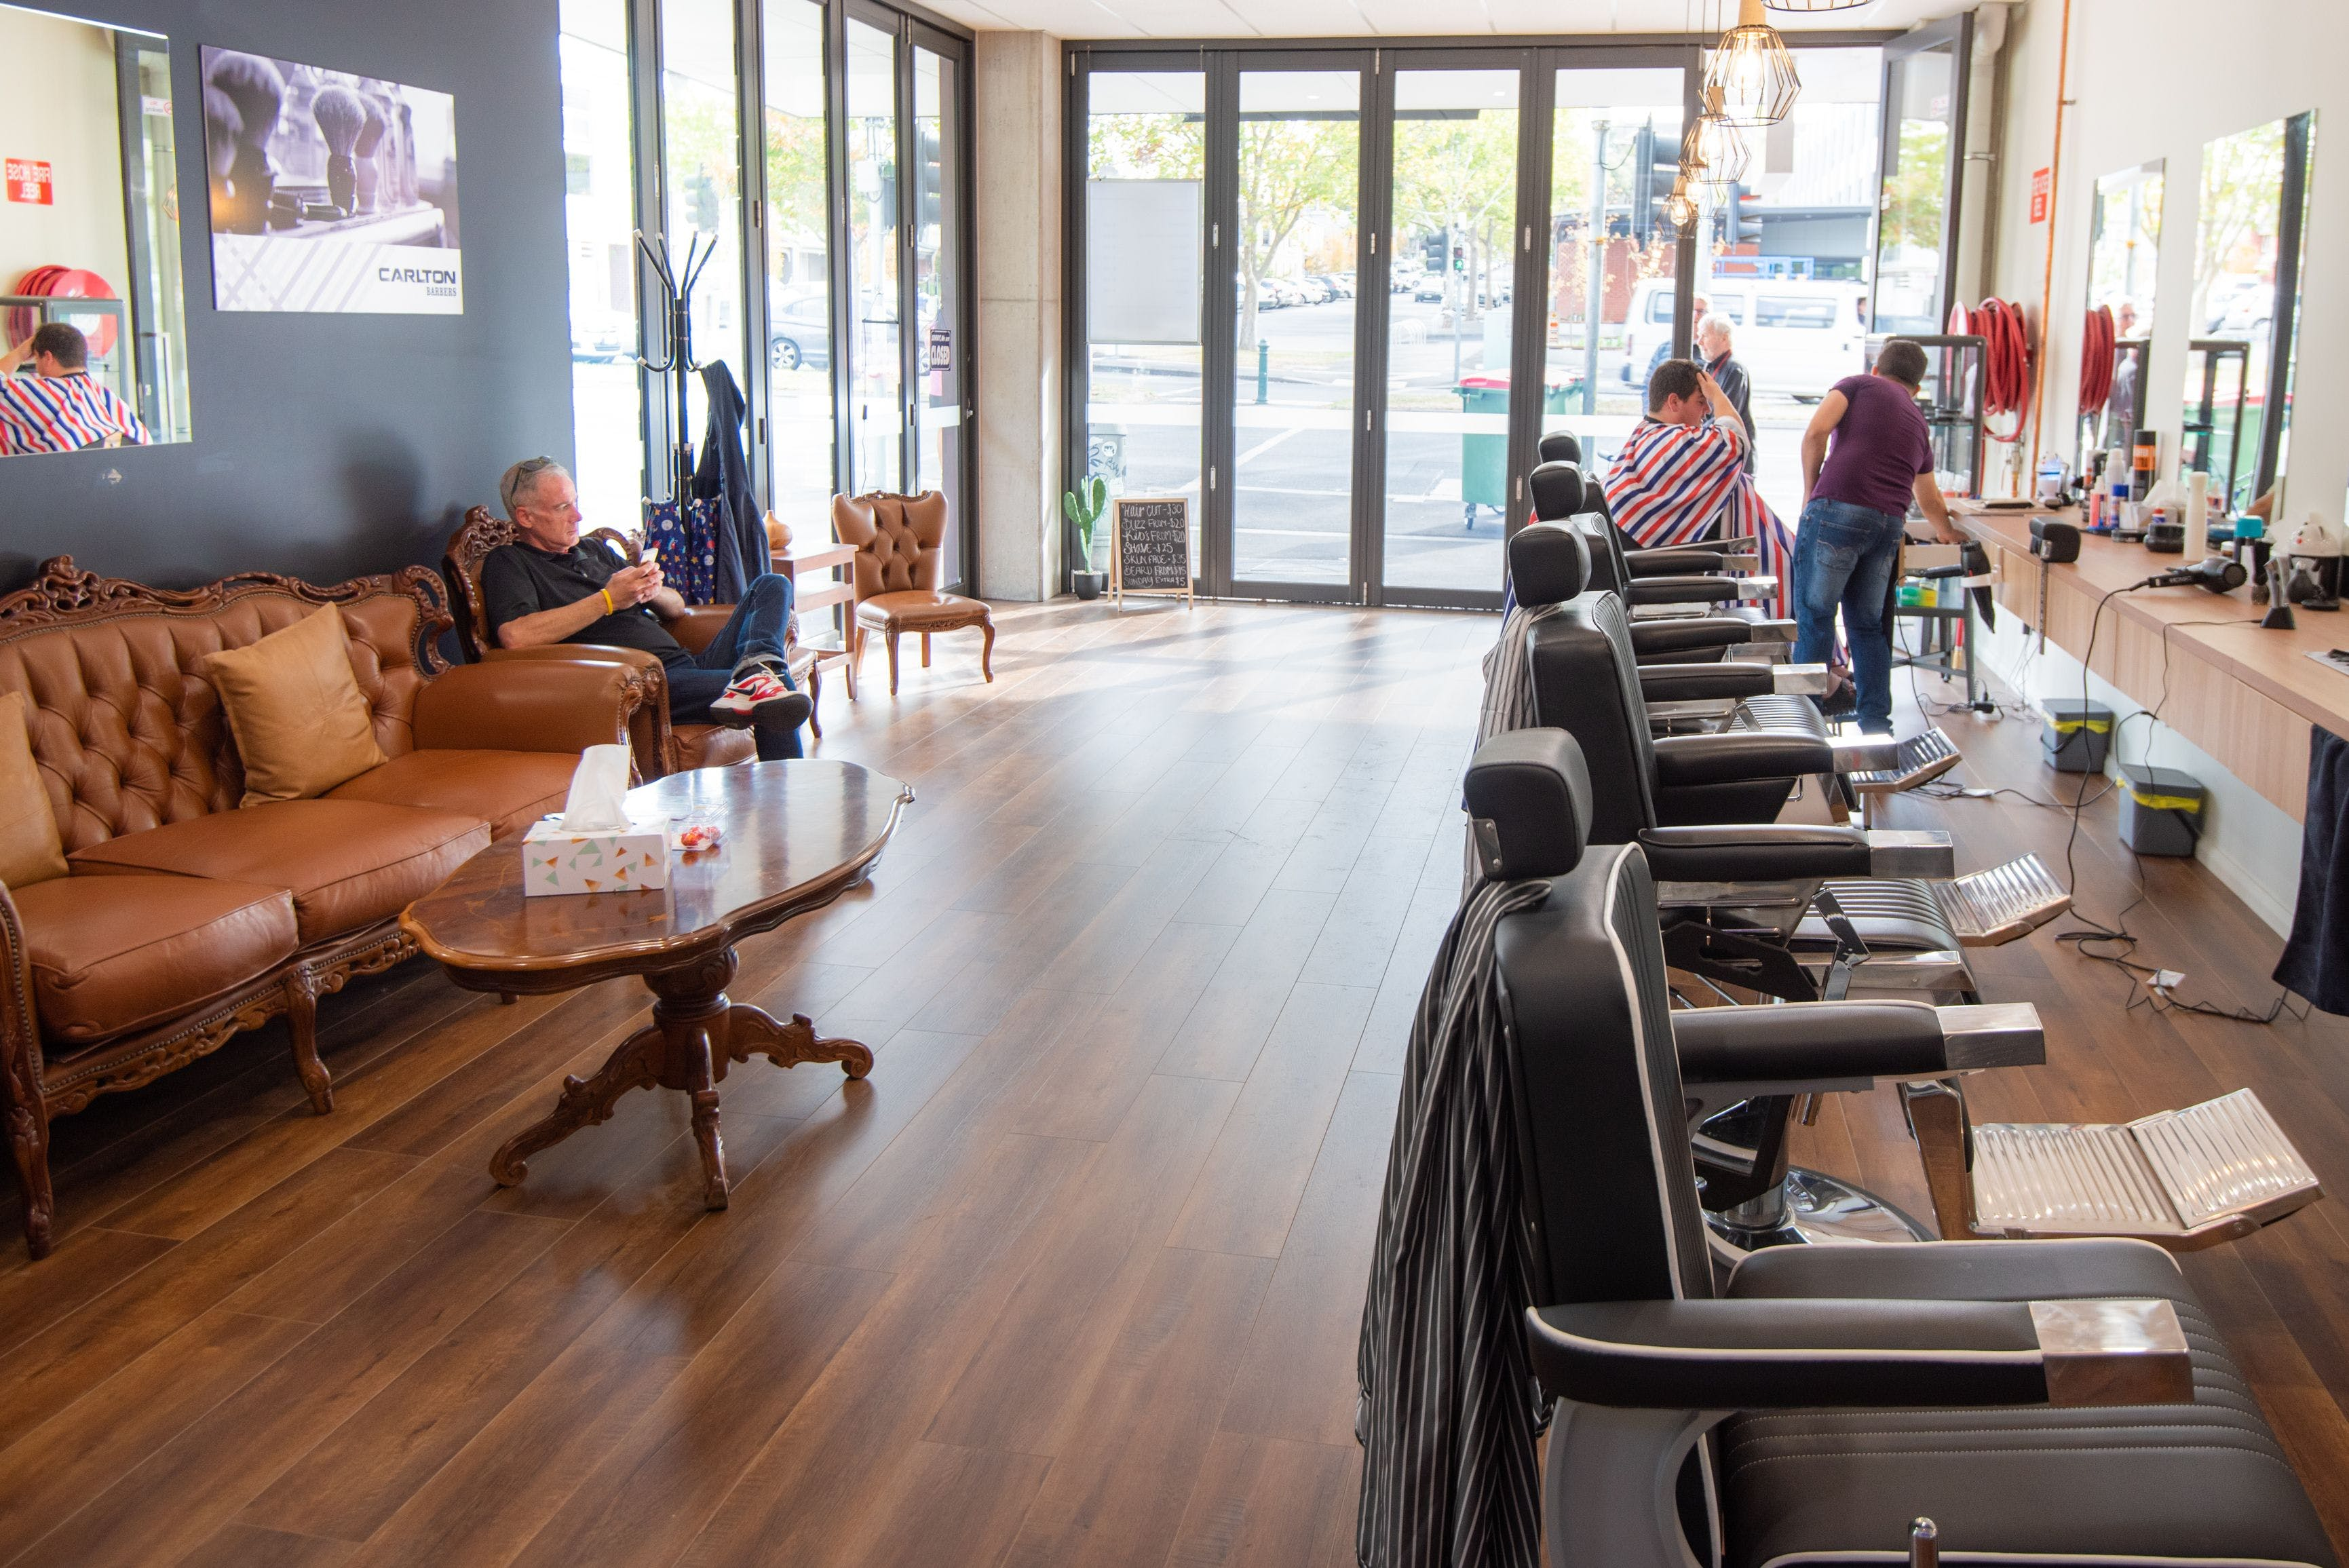 Carlton Barbers - Carlton  Haircut and Hairdressing  Barbers